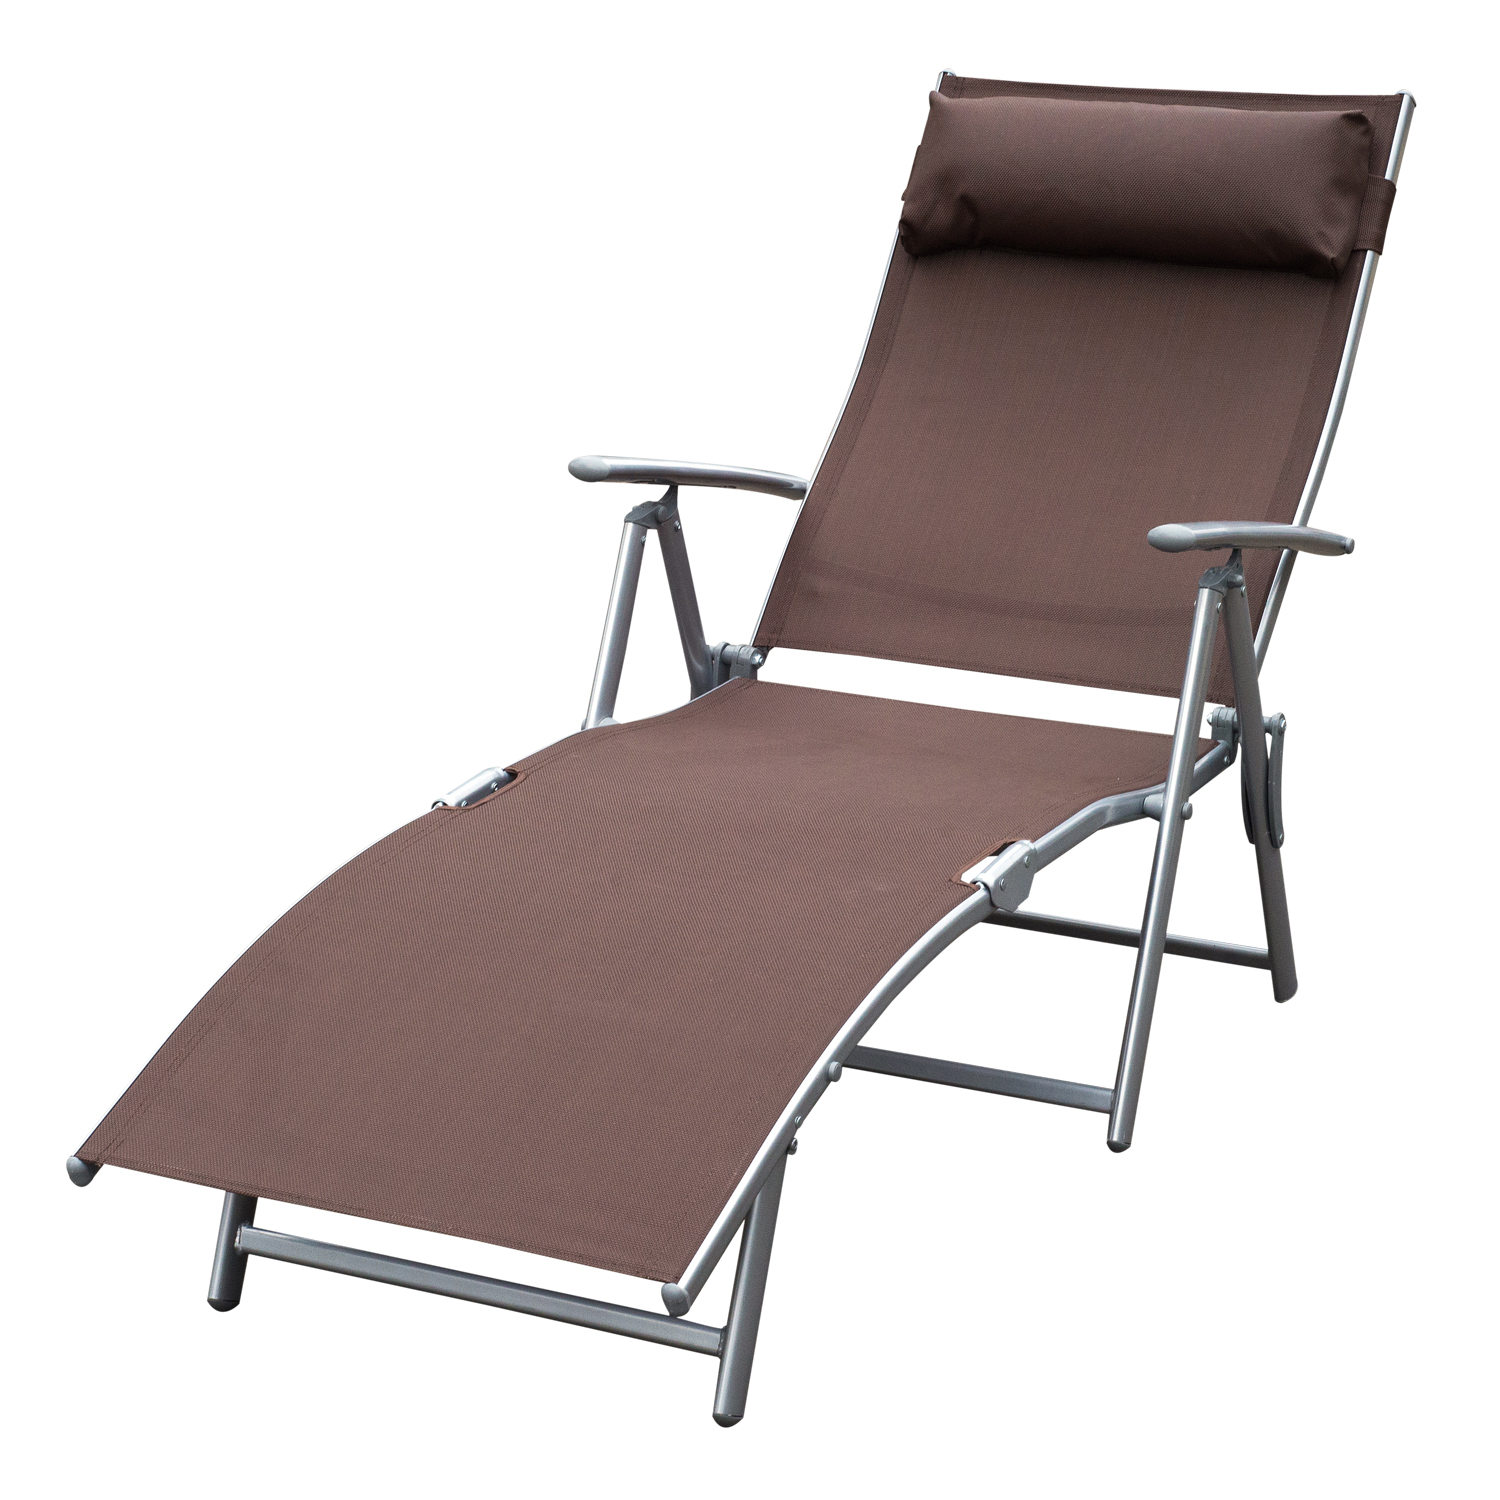 Outsunny Sling Fabric Folding Patio Reclining Outdoor Deck Chaise Lounge  Chair With Cushion   Brown